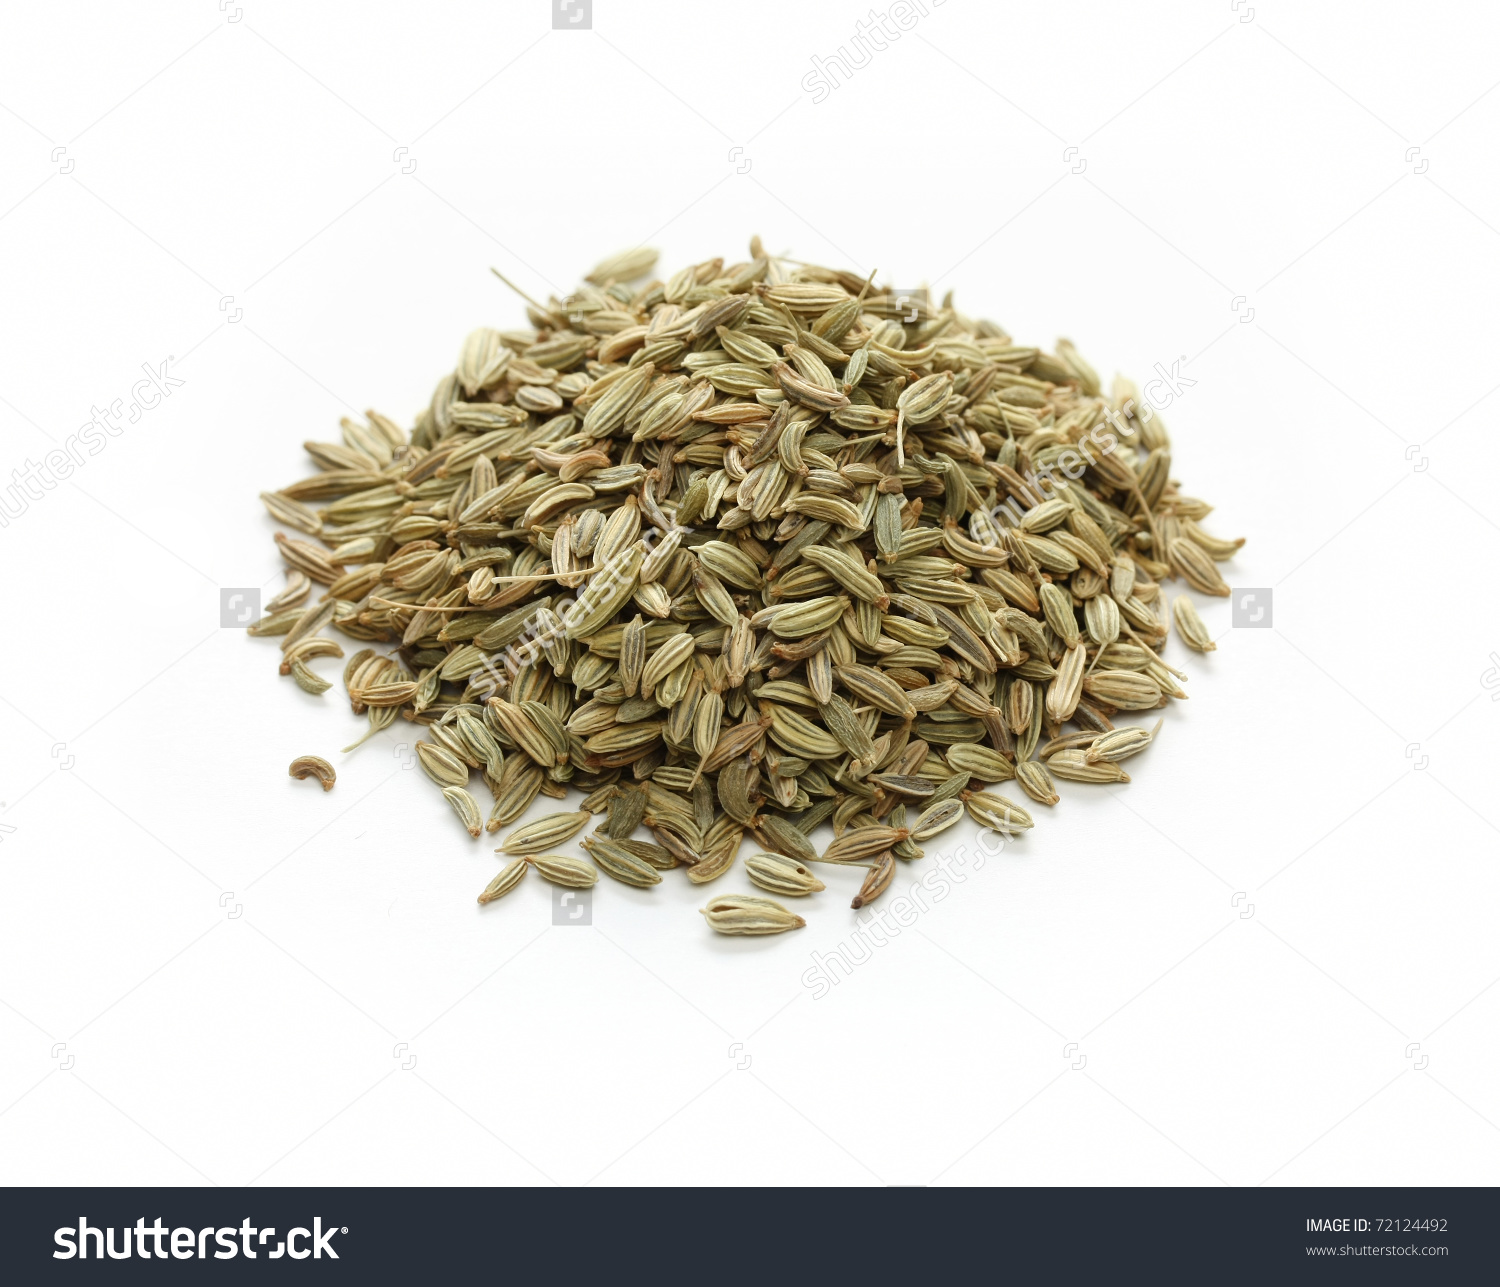 Fennel Seeds, Indian Spice Stock Photo 72124492 : Shutterstock.